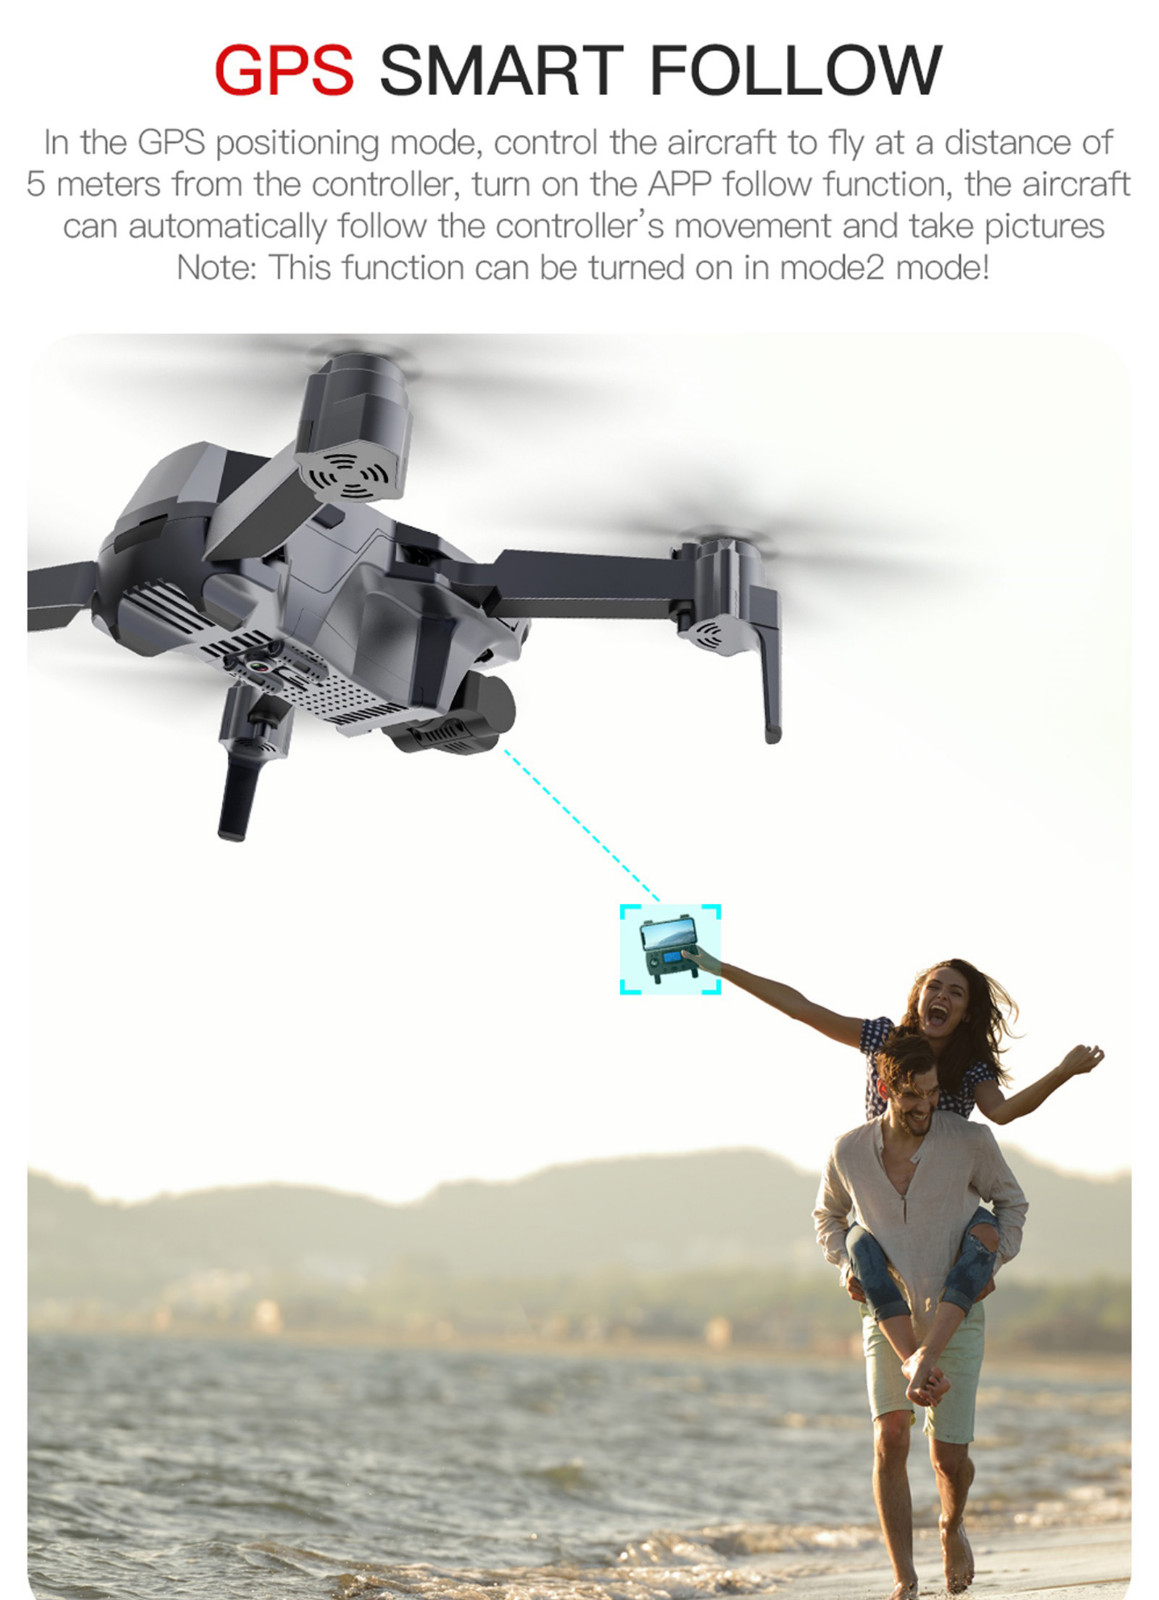 H33094685e4fc4074aaf528409e9231619 - 2020 New Sg907 Pro 5g Wifi Drone 2-axis Gimbal 4k Camera Wifi Gps Rc Drone Toy Rc Four-axis Professional Folding Camera Drones